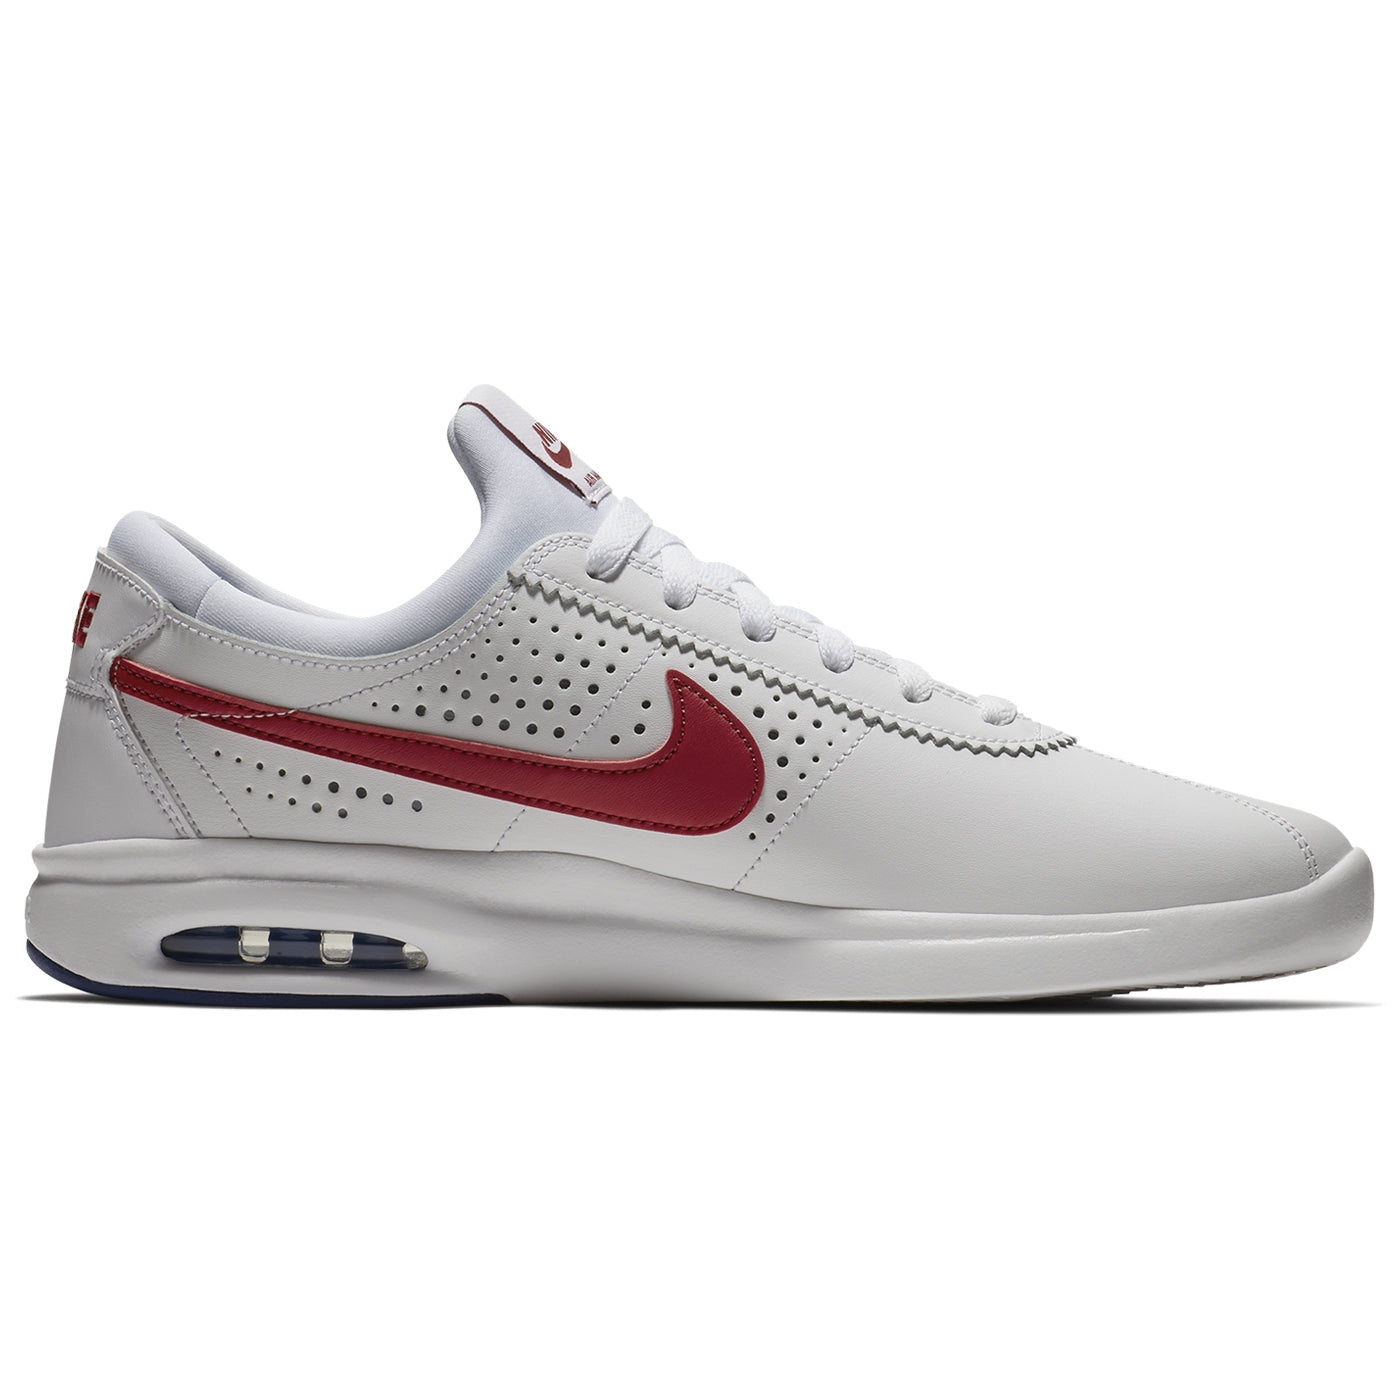 bc81a4d0a51 Air Max Bruin Vapor Shoes in White   Gym-Red - Game Royal by Nike SB ...